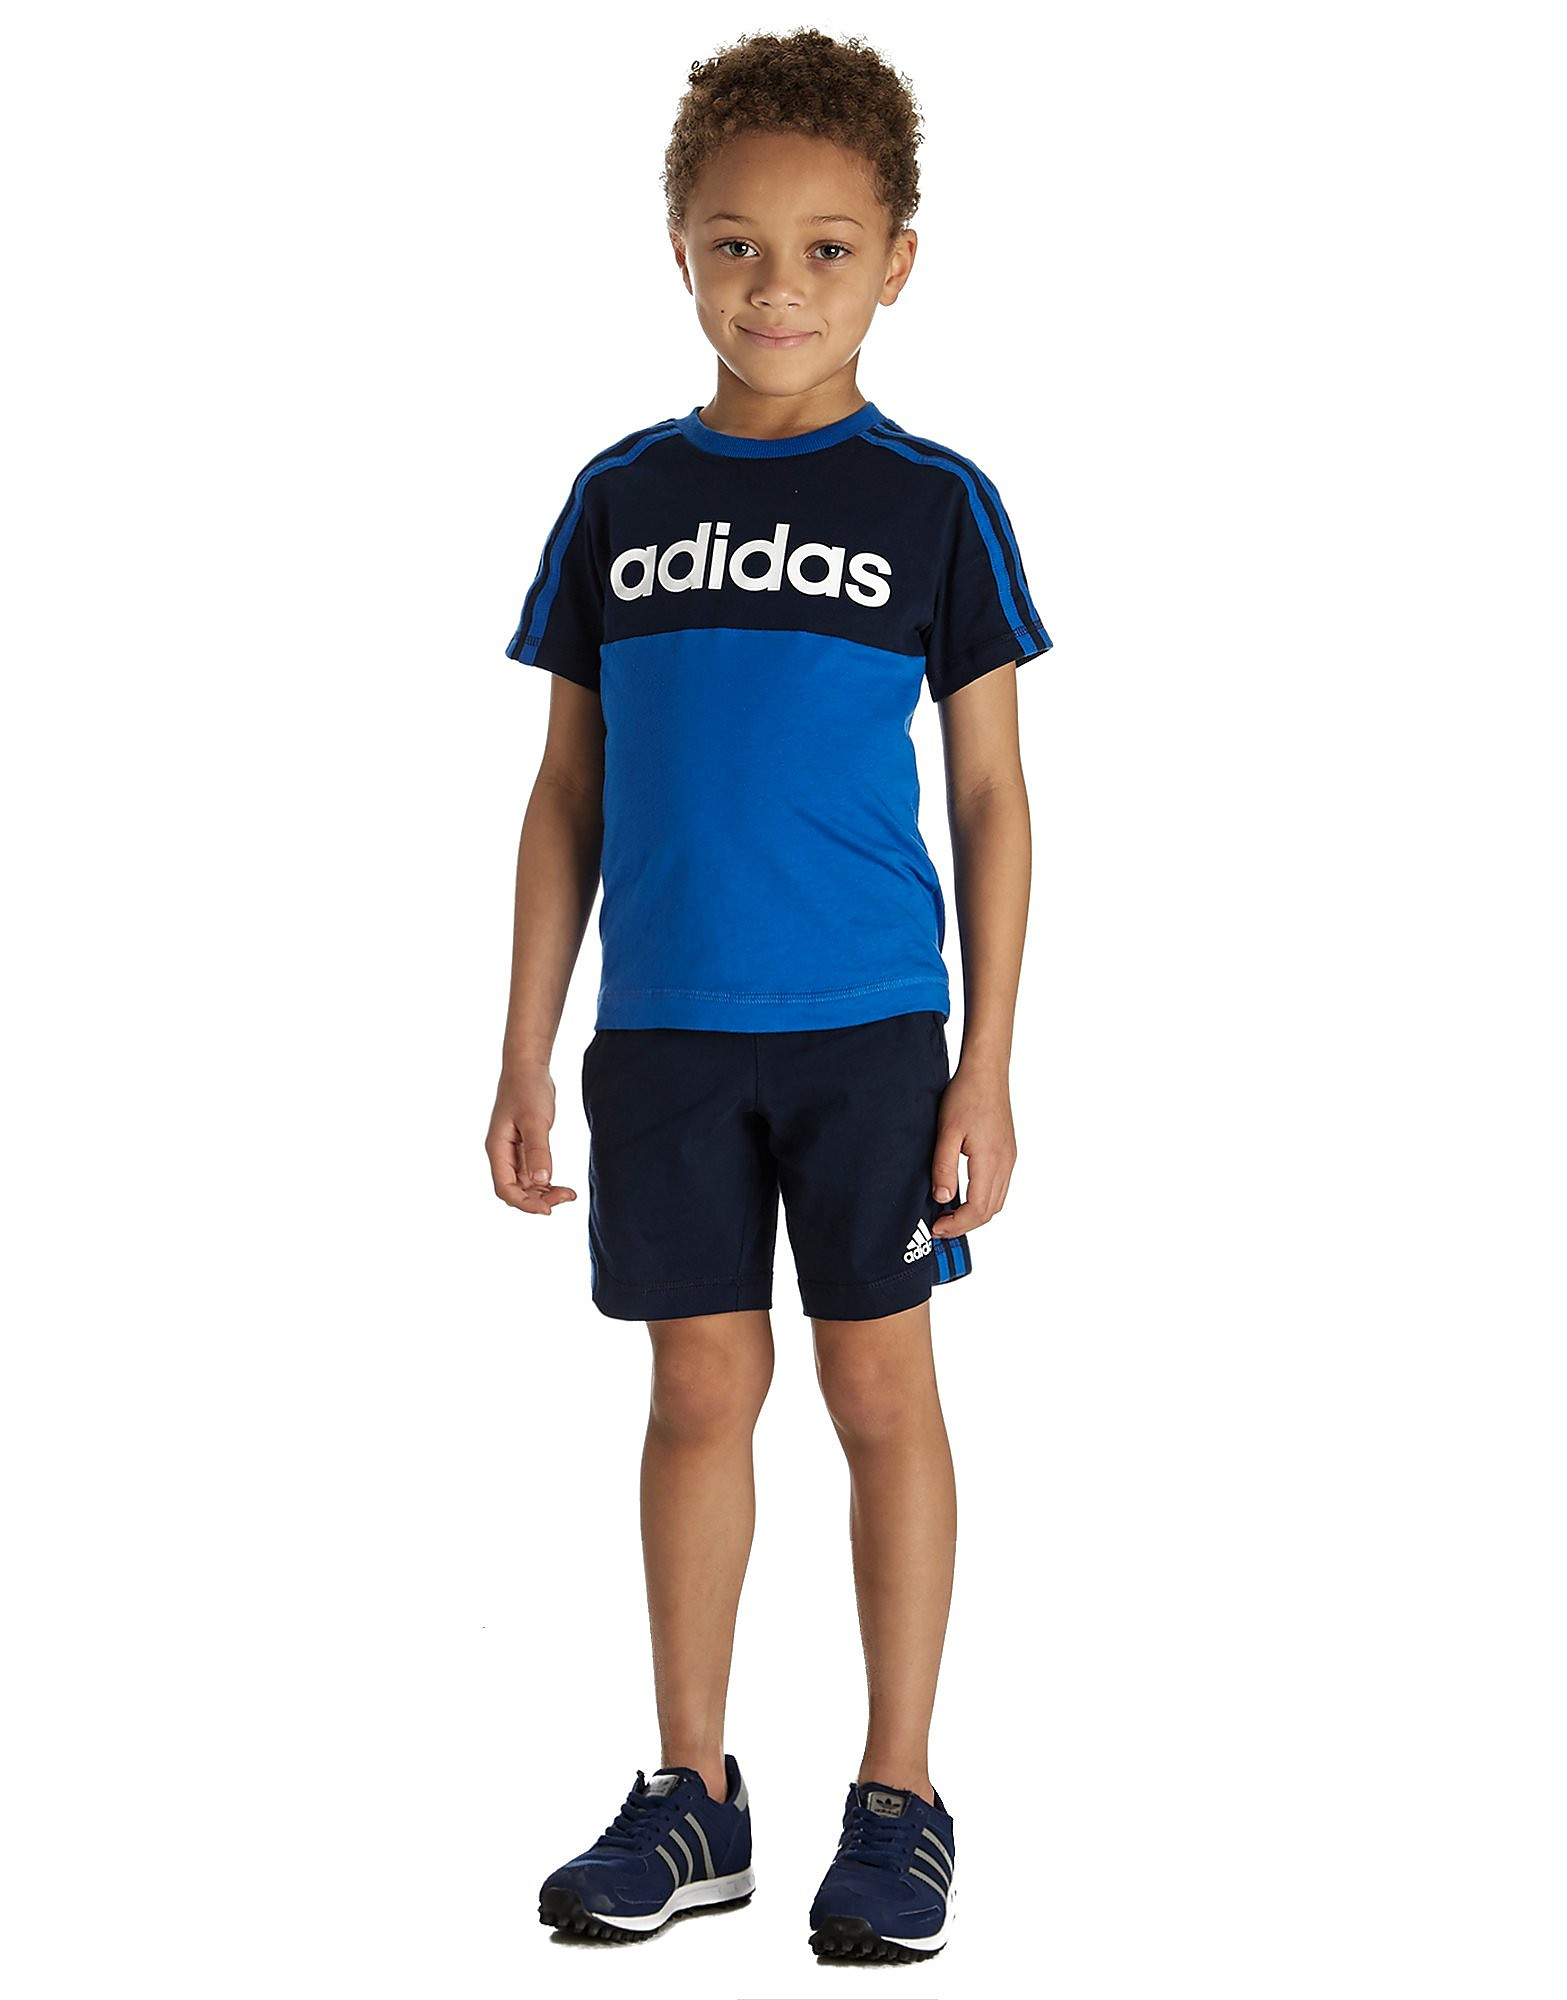 adidas Linear T-shirt/Shorts Set Bambino